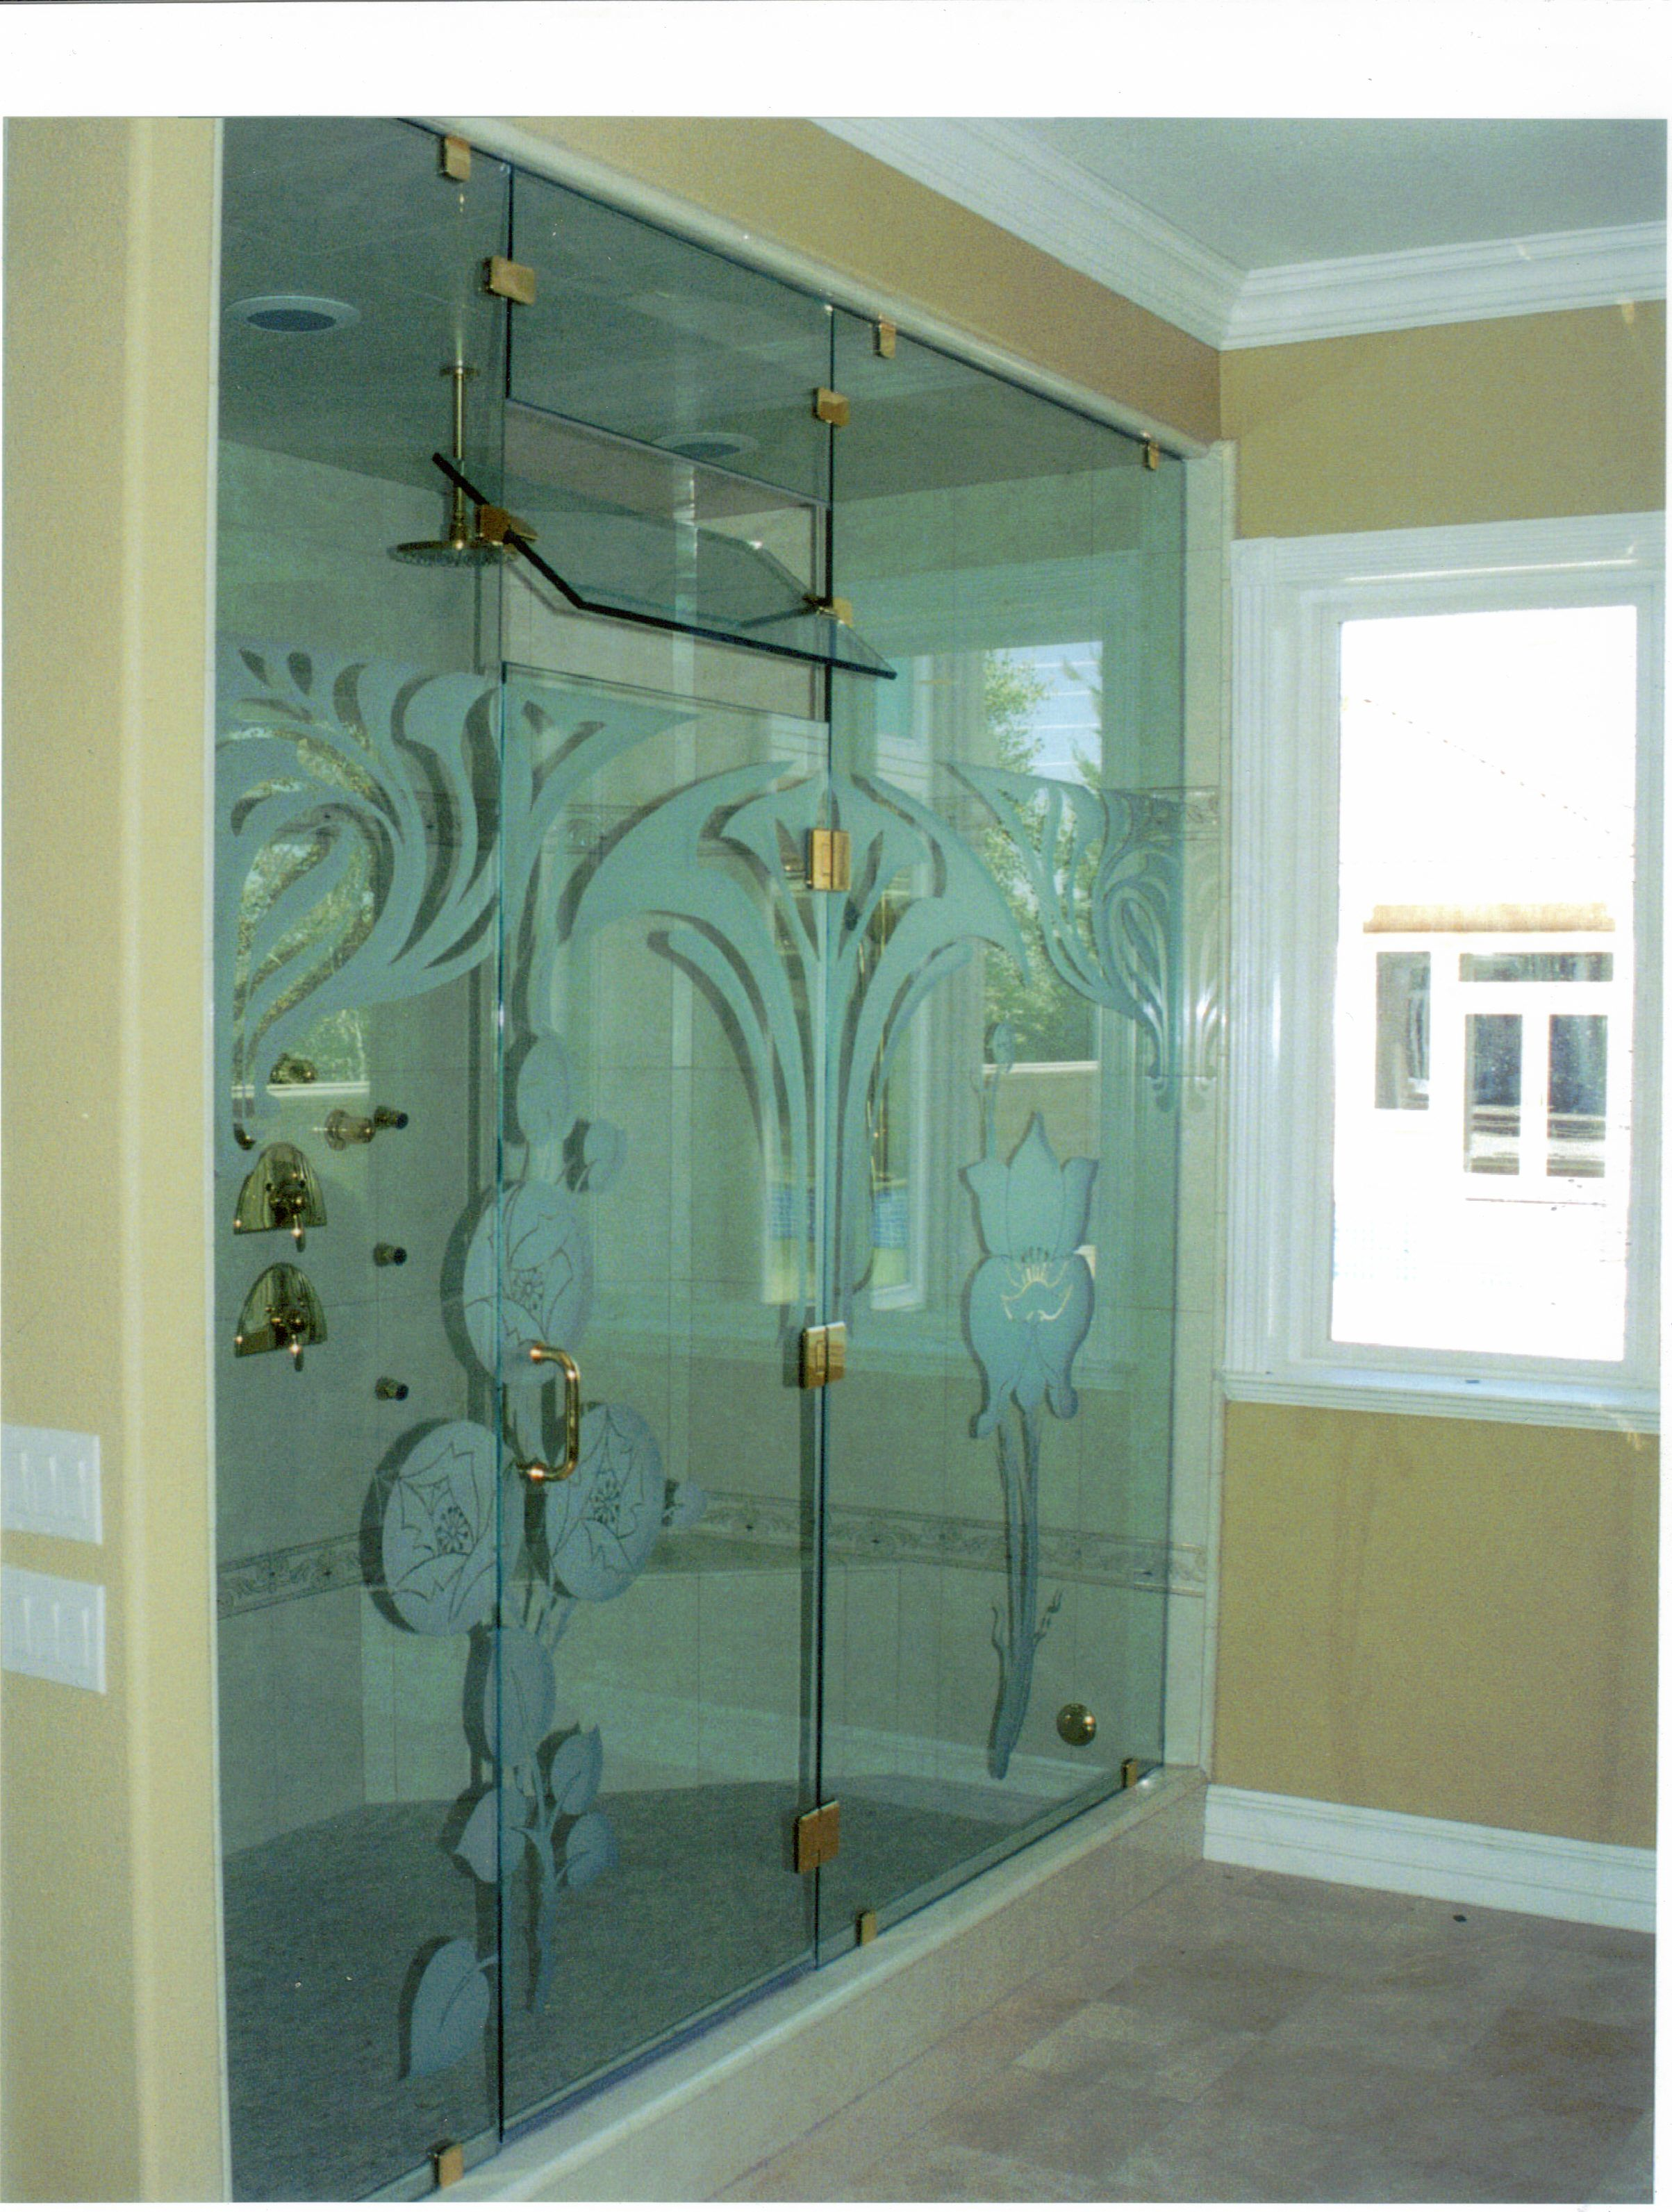 Fine Images For Small Bathroom Designs Big Marble Bathroom Flooring Pros And Cons Round Bath Step Stool Seen Tv Big Bathroom Wall Mirrors Young Master Bath Tile Design Ideas DarkBathtub Ceramic Paint 1000  Images About Shower Doors On Pinterest | Deserts, Etched ..